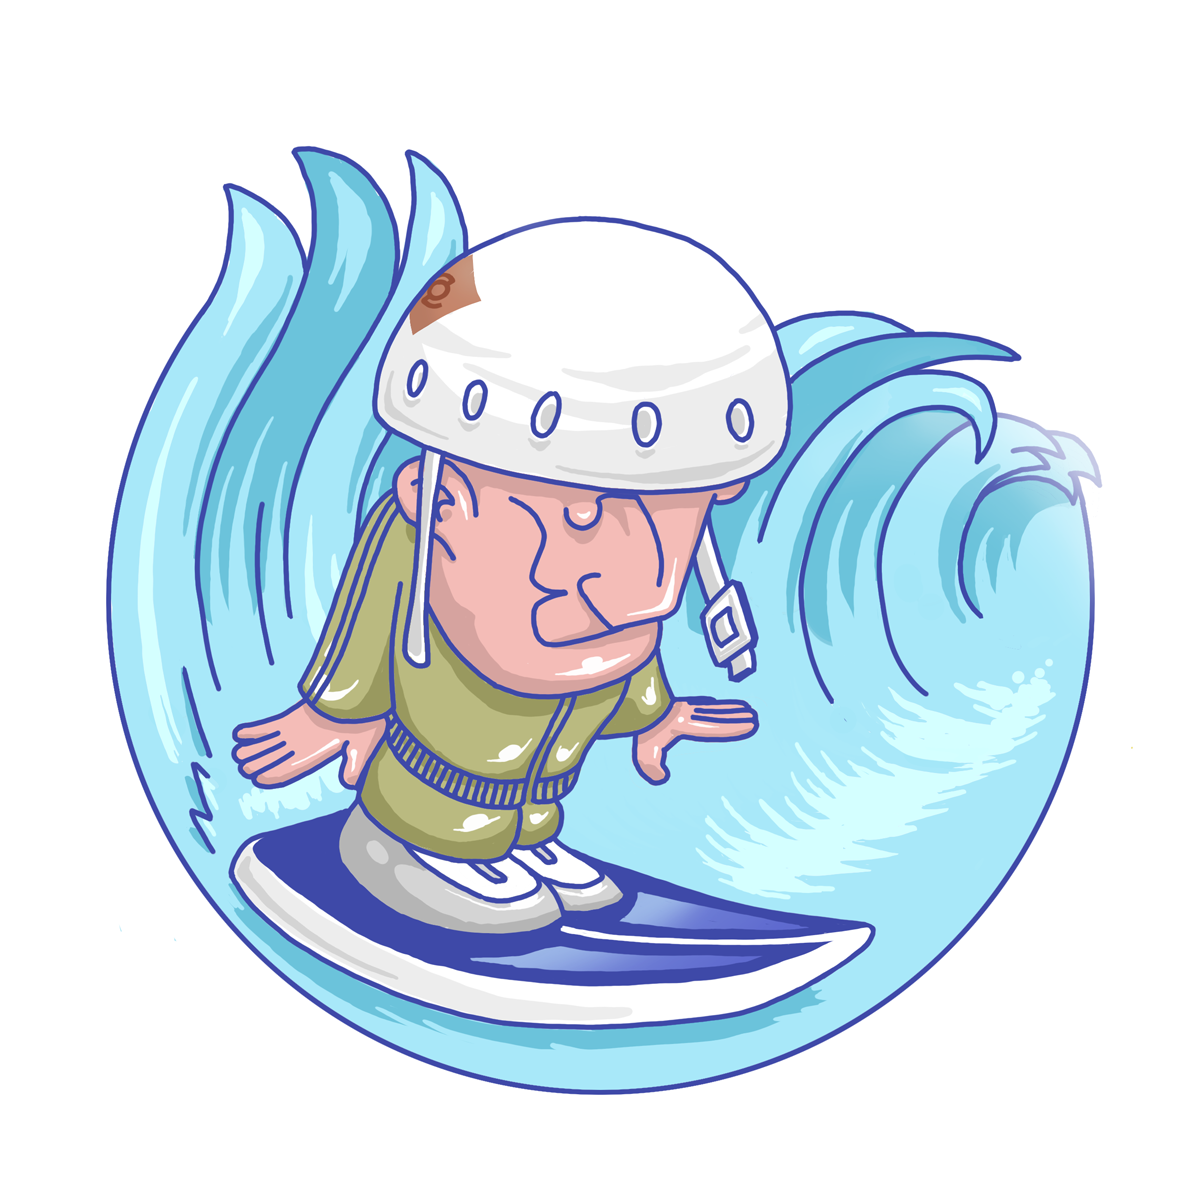 Surfer by zor